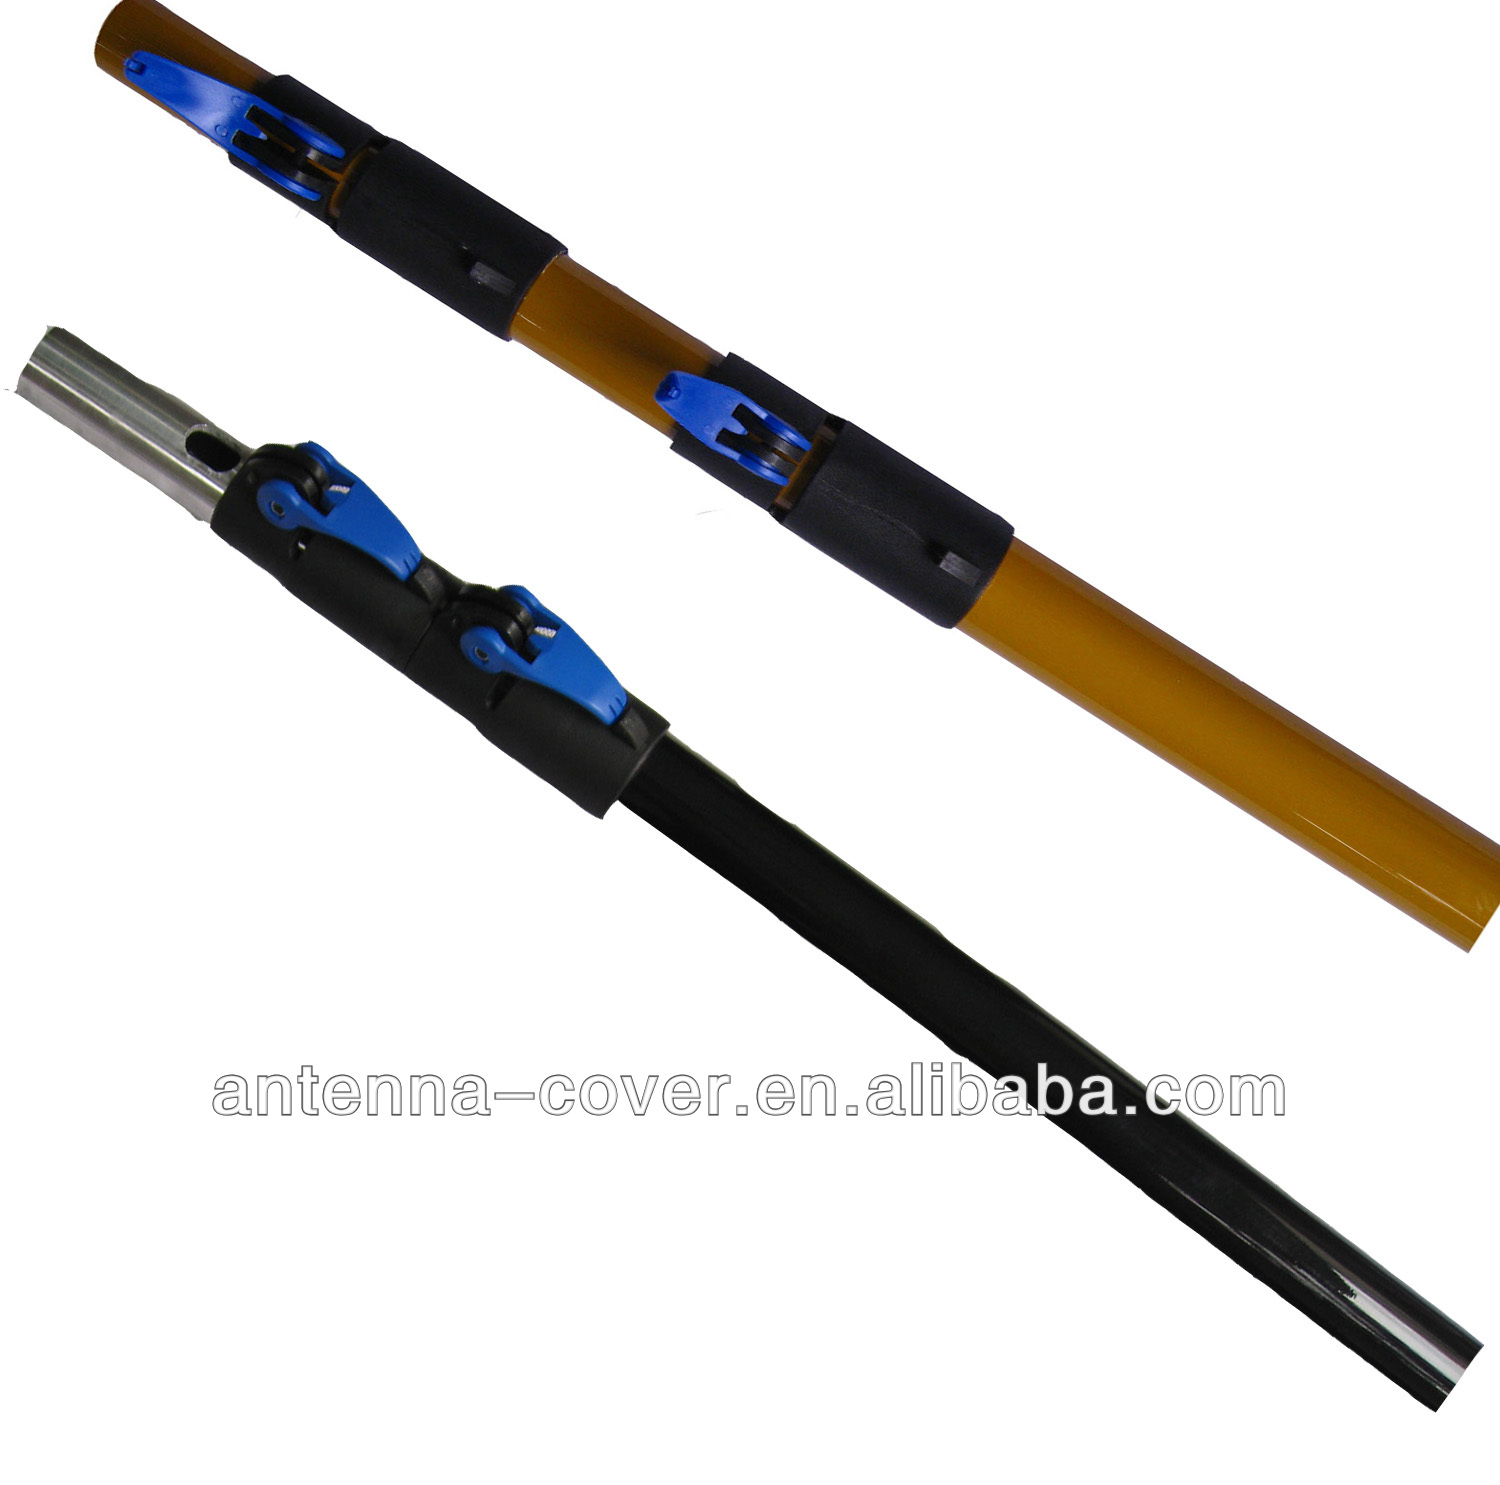 Swimming Pool Telescopic Pole - Buy Swimming Pool Telescopic Pole,Swimming  Pool Telescopic Pole,Swimming Pool Telescopic Pole Product on Alibaba.com